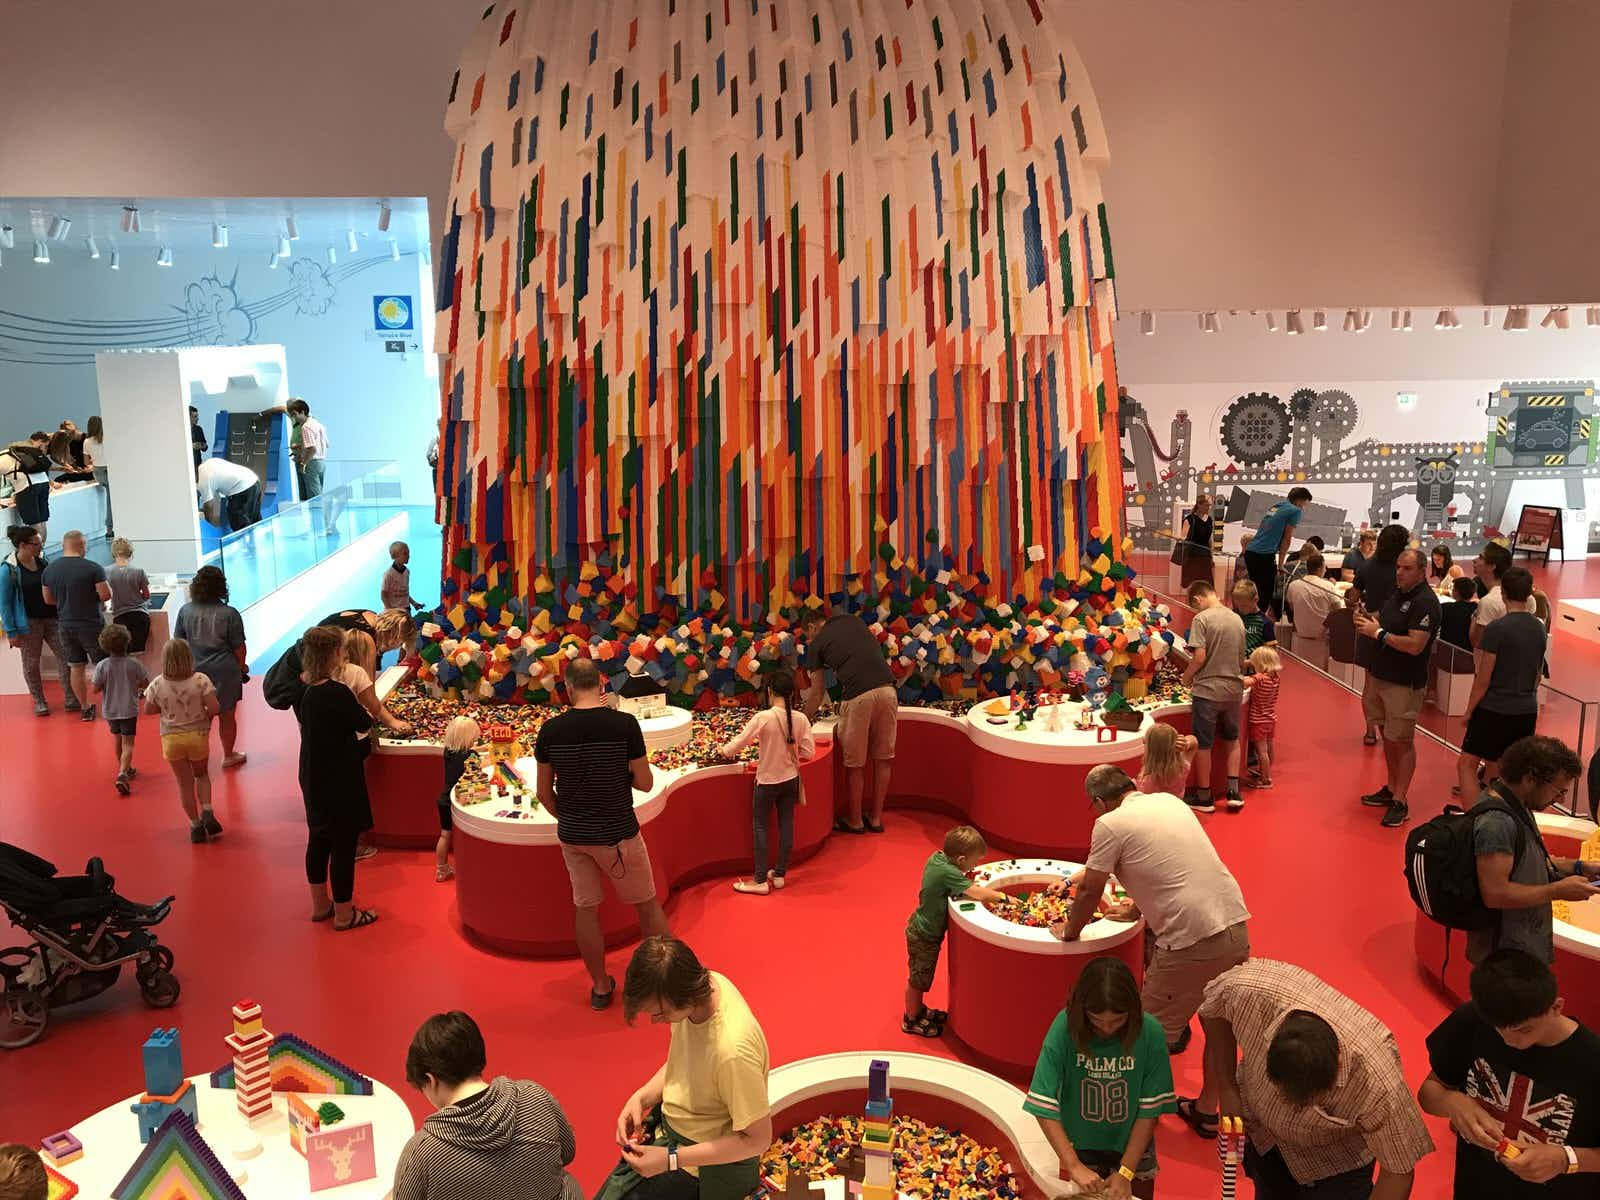 Adults and children playing with brightly-coloured Lego bricks inside the Lego House in Billund © Abigail Blasi / Lonely Planet